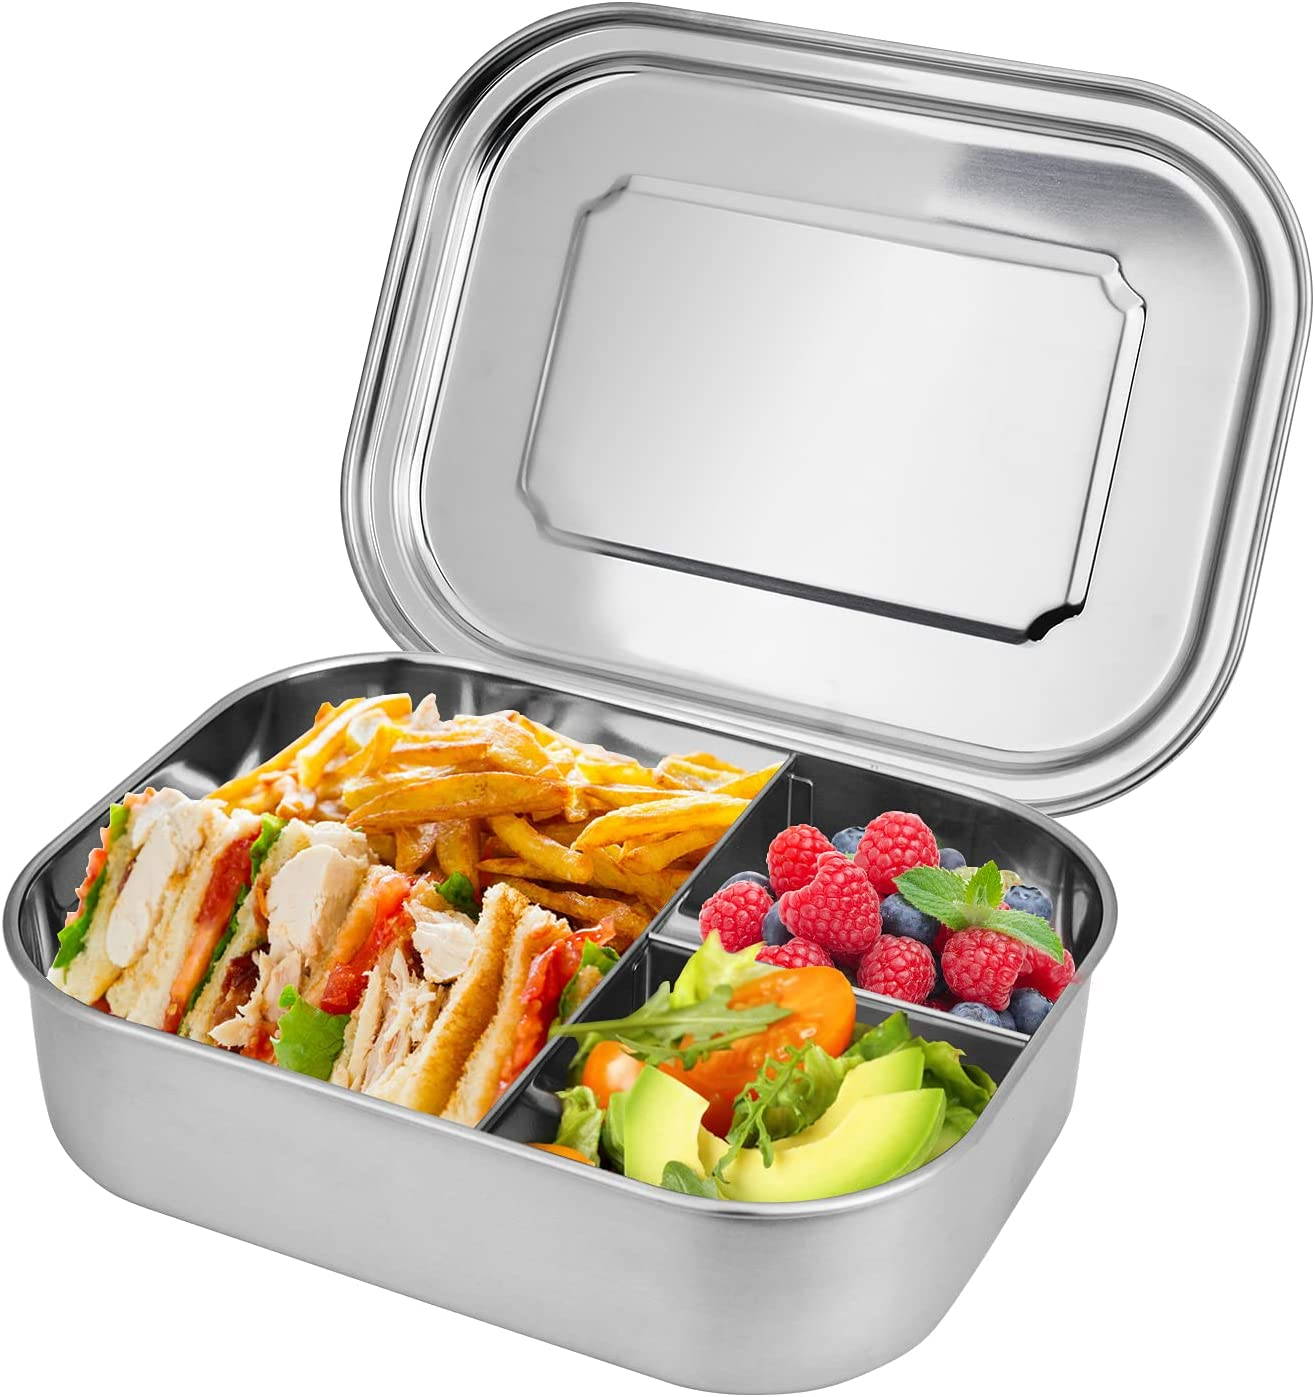 Stainless Bento Lunch Box 1400ML 304 Stainless Steel Lunch Container for Kids School Adults Tiffin Food Storage Containers with 3 compartment Fixed Divided Metal Snack Container-Stainless Lid